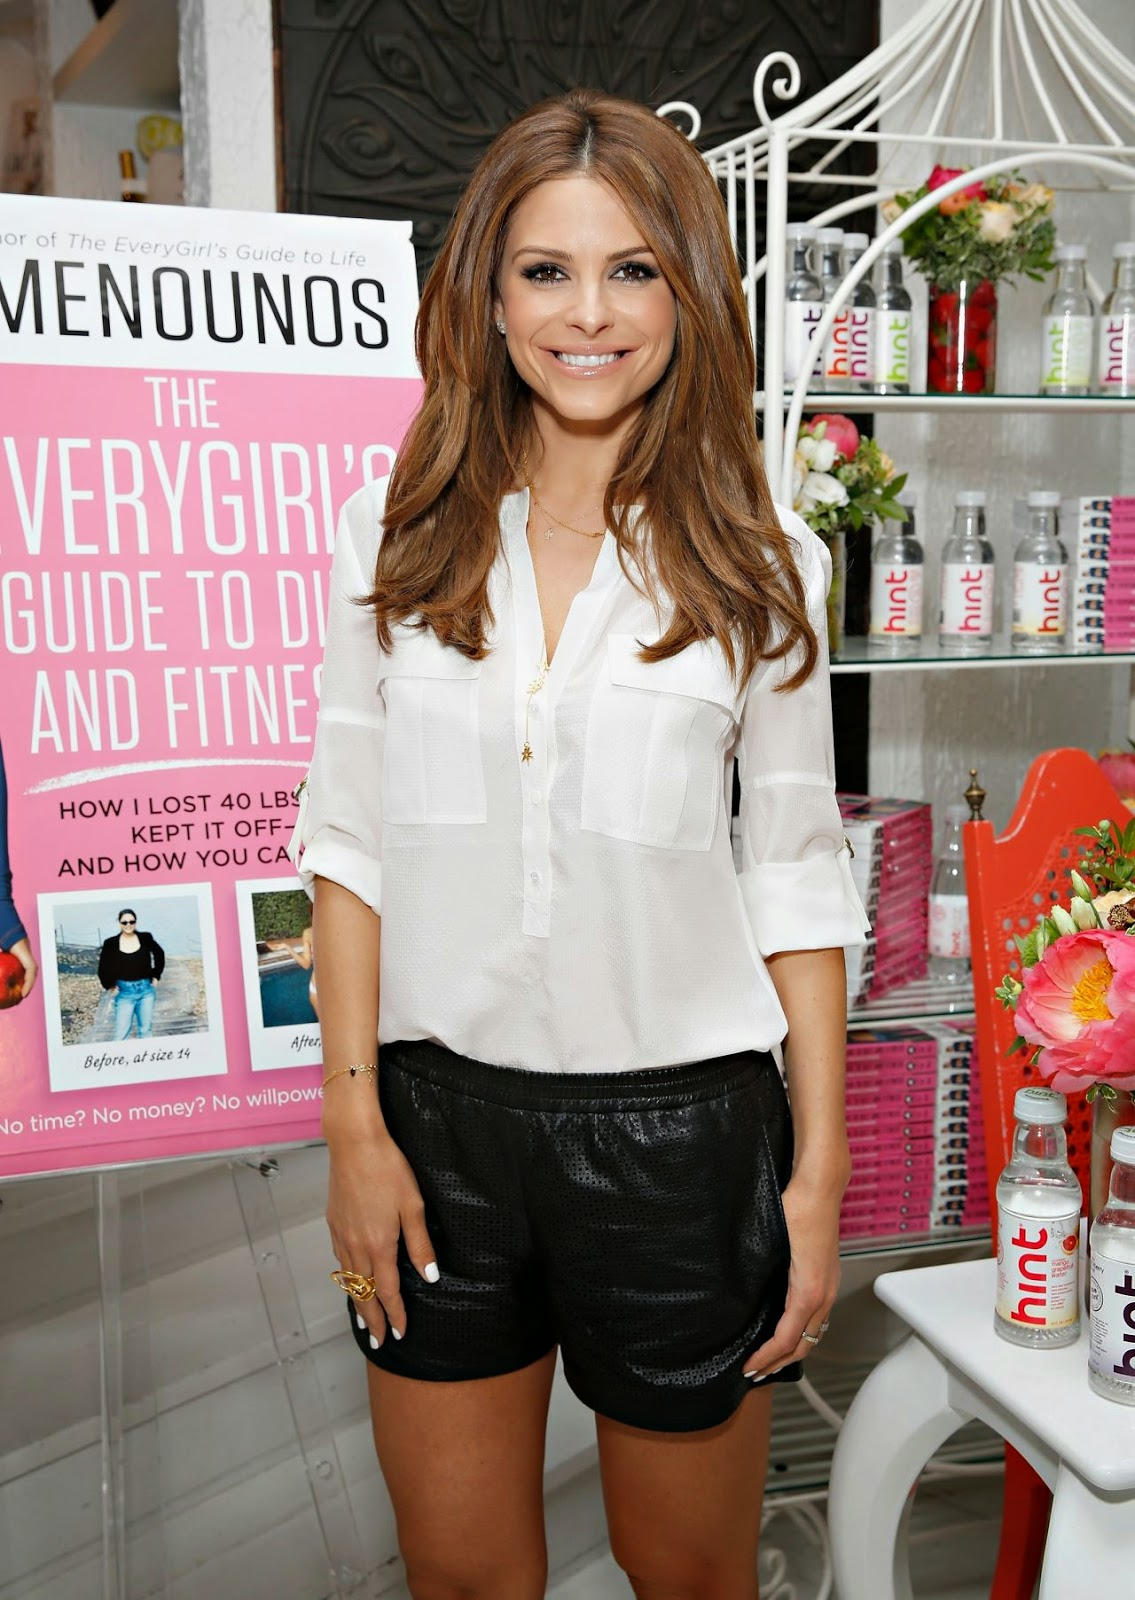 Maria Menounos celebrates the launch of her new book in black shorts and a white blouse in NYC